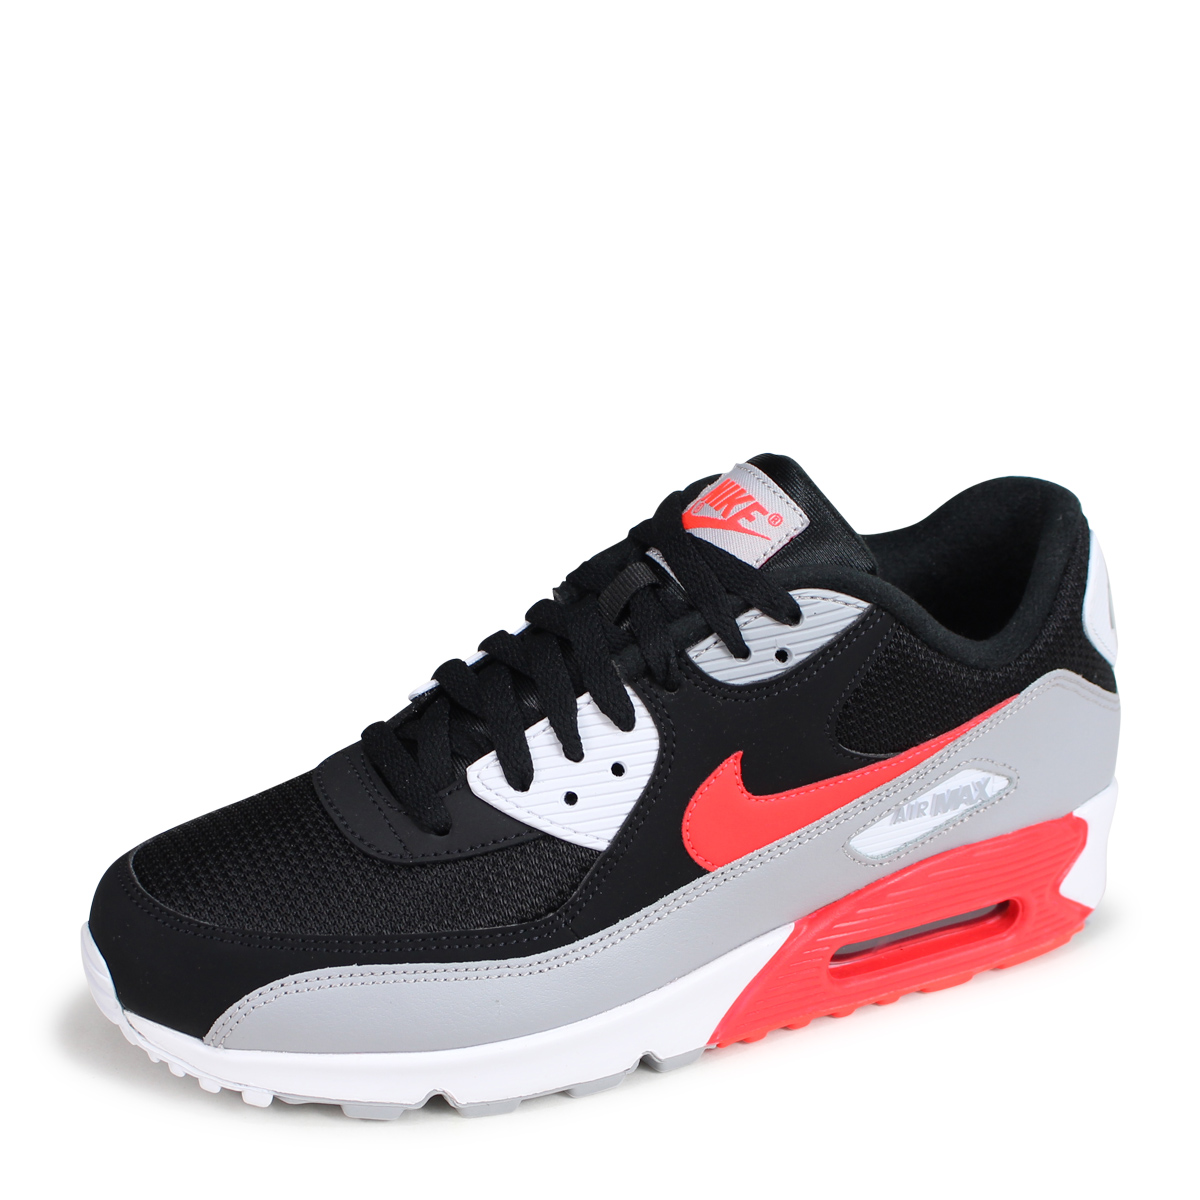 NIKE AIR MAX 90 ESSENTIAL Kie Ney AMAX 90 essential sneakers men AJ1285 012 gray [load planned Shinnyu load in reservation product 1015 containing]